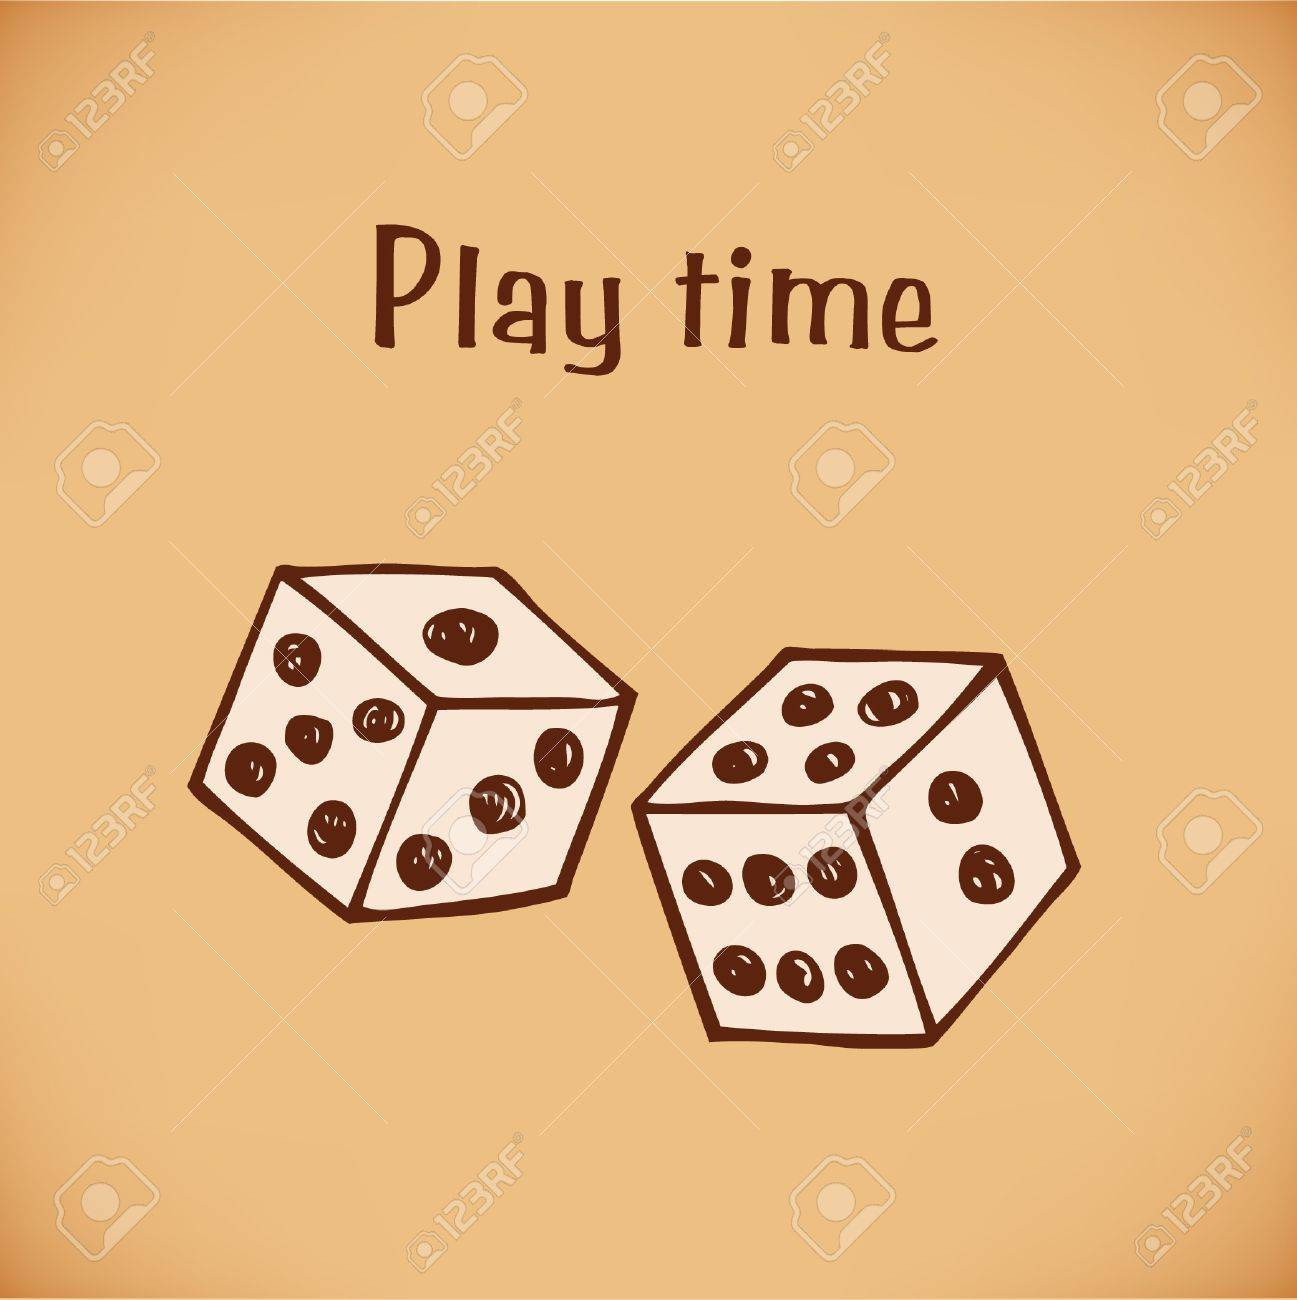 image of dice  Bricks Stock Vector - 18733277